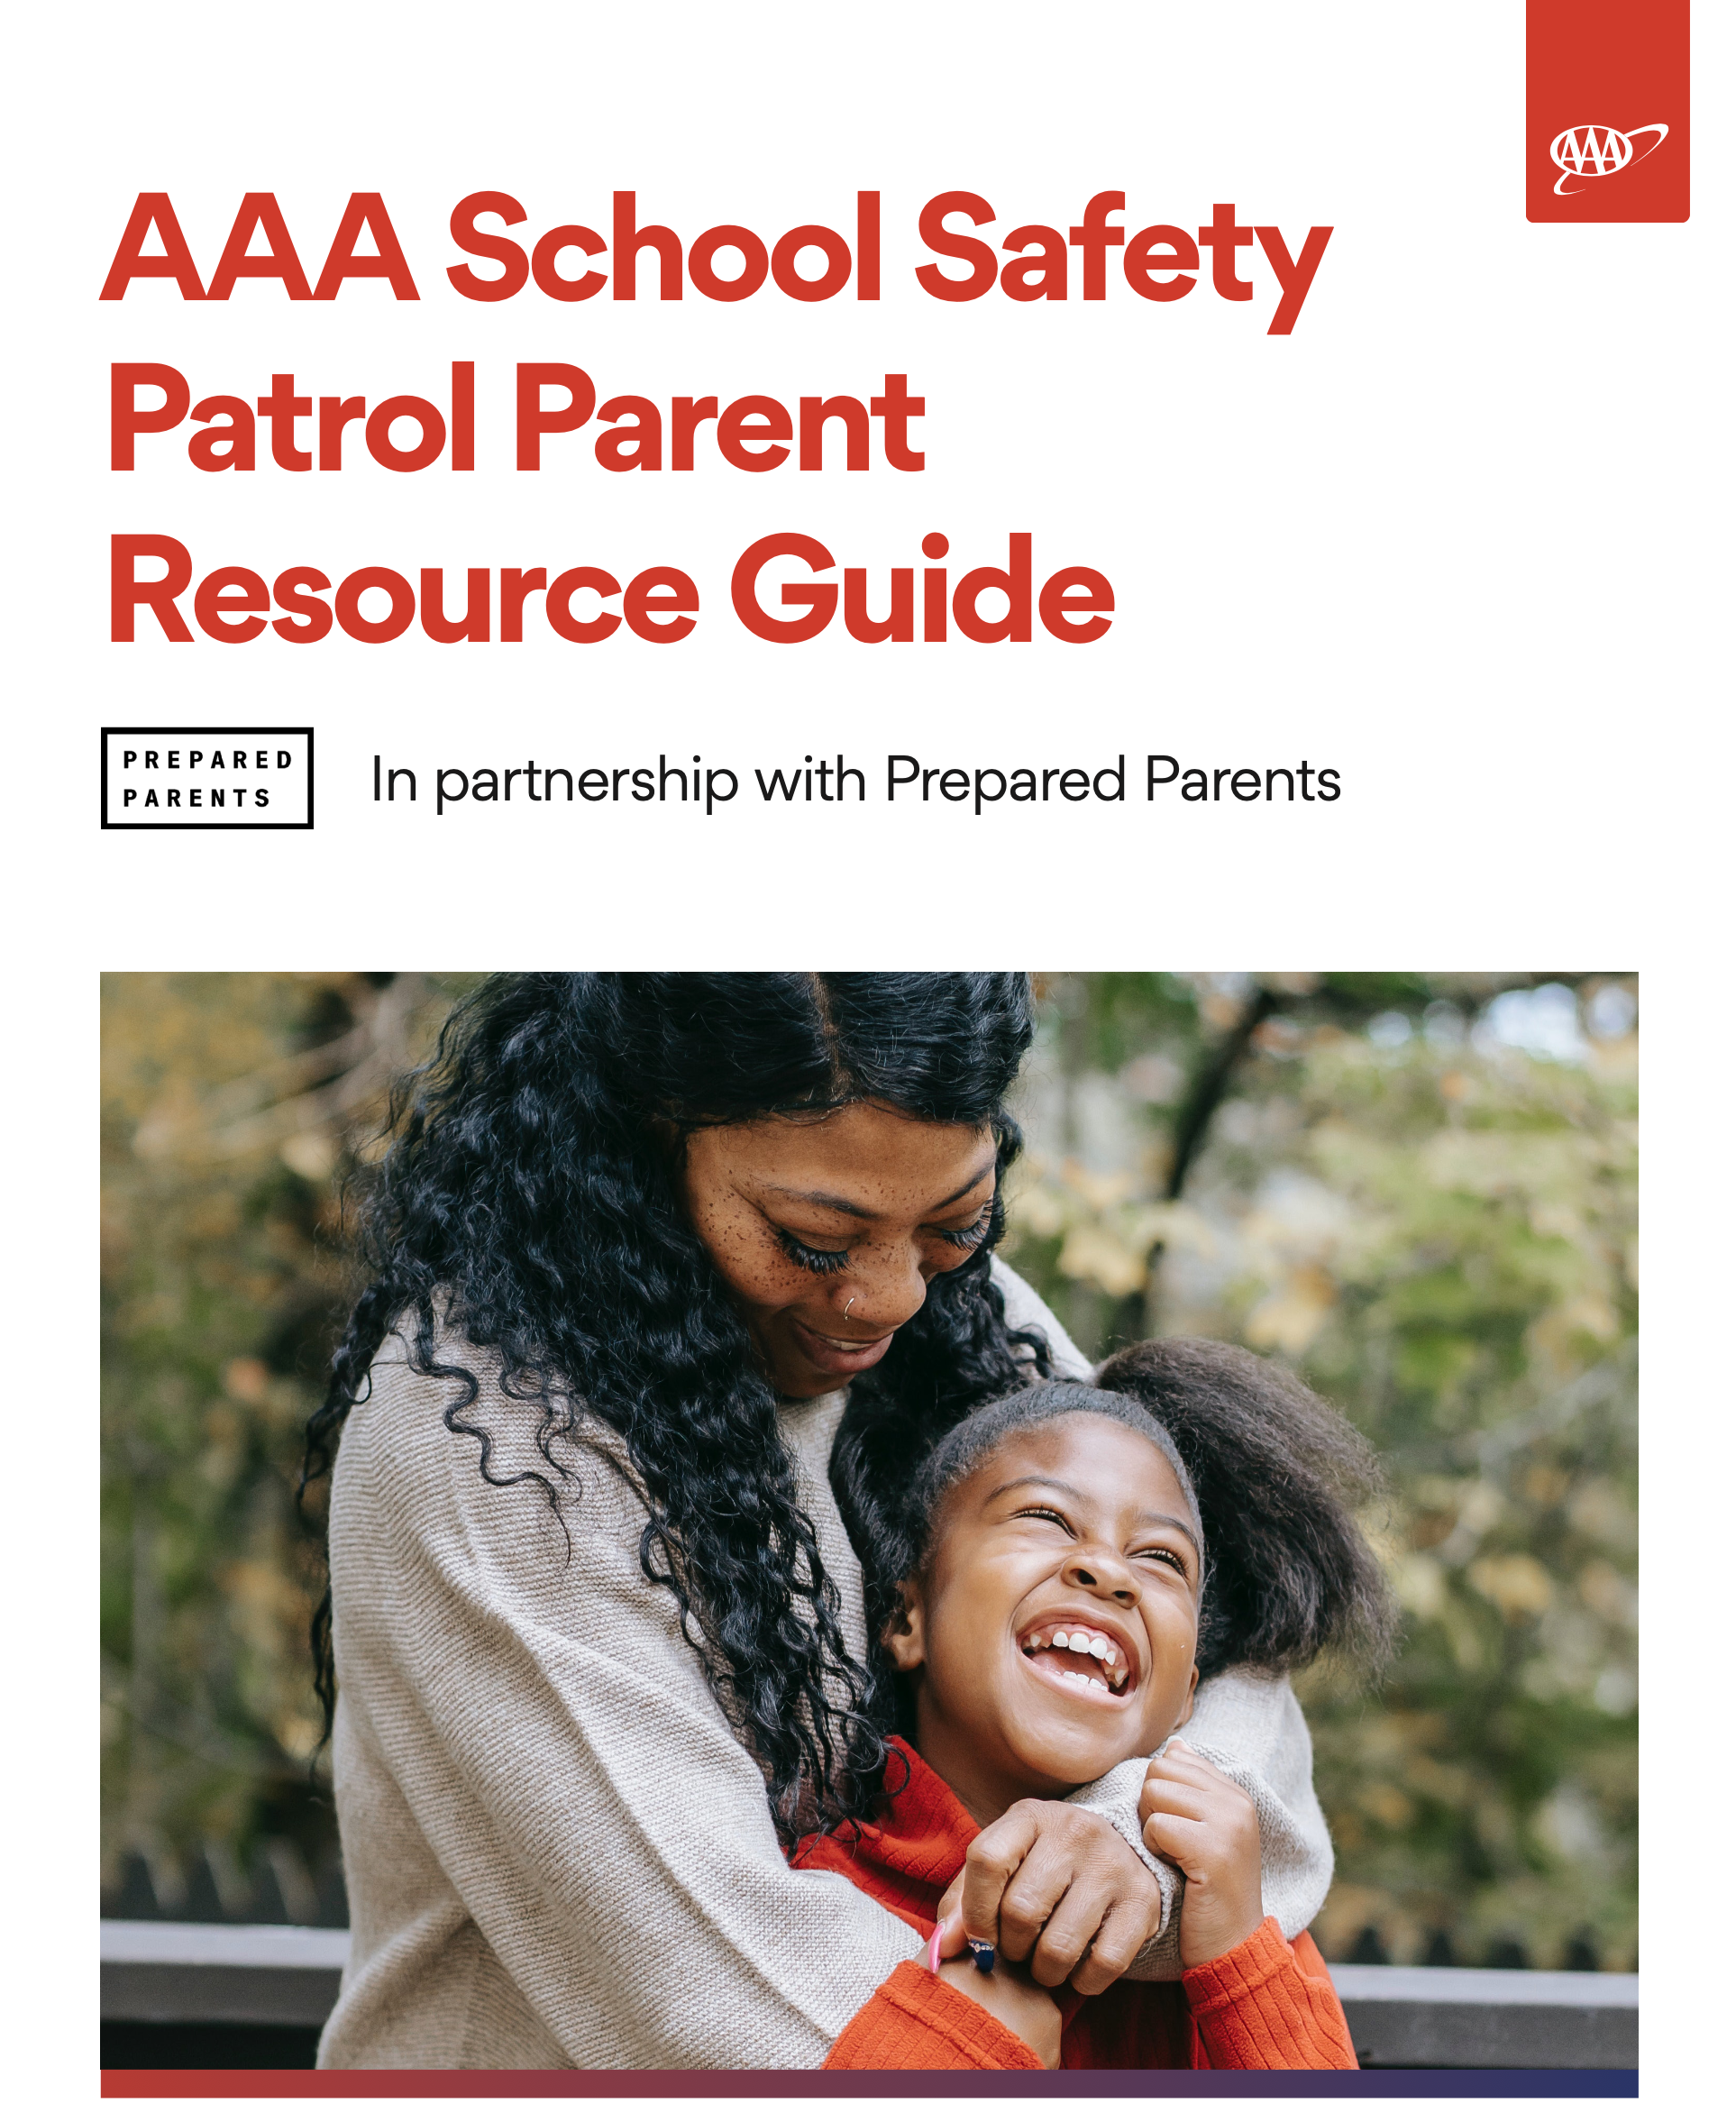 Prepared Parents Collaborates with AAA to Create School Safety Patrol Parent Guide